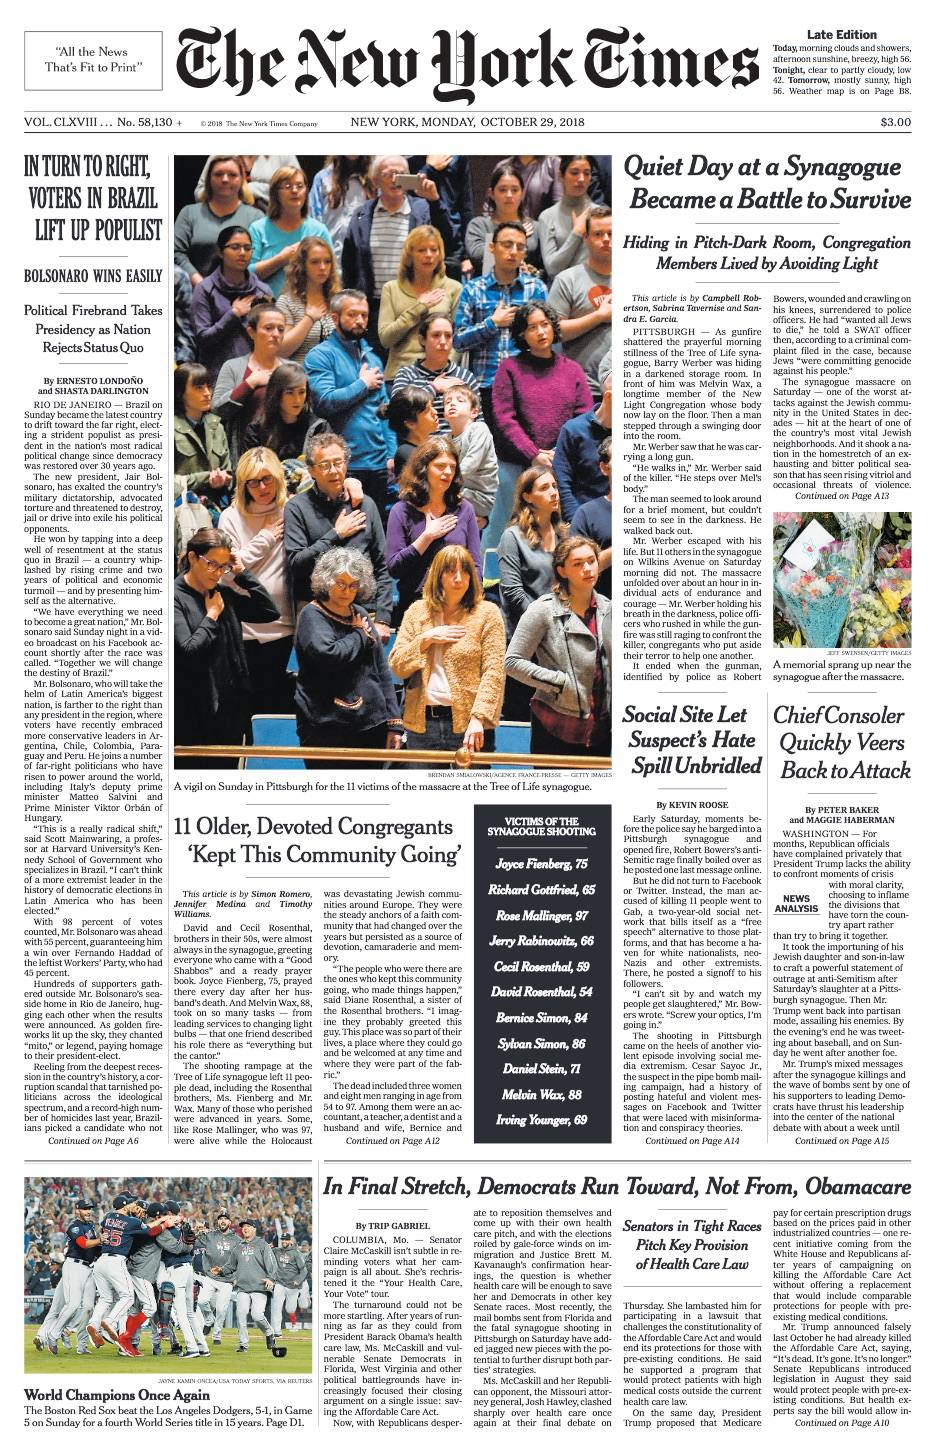 NYT_FrontPage_102918.jpg